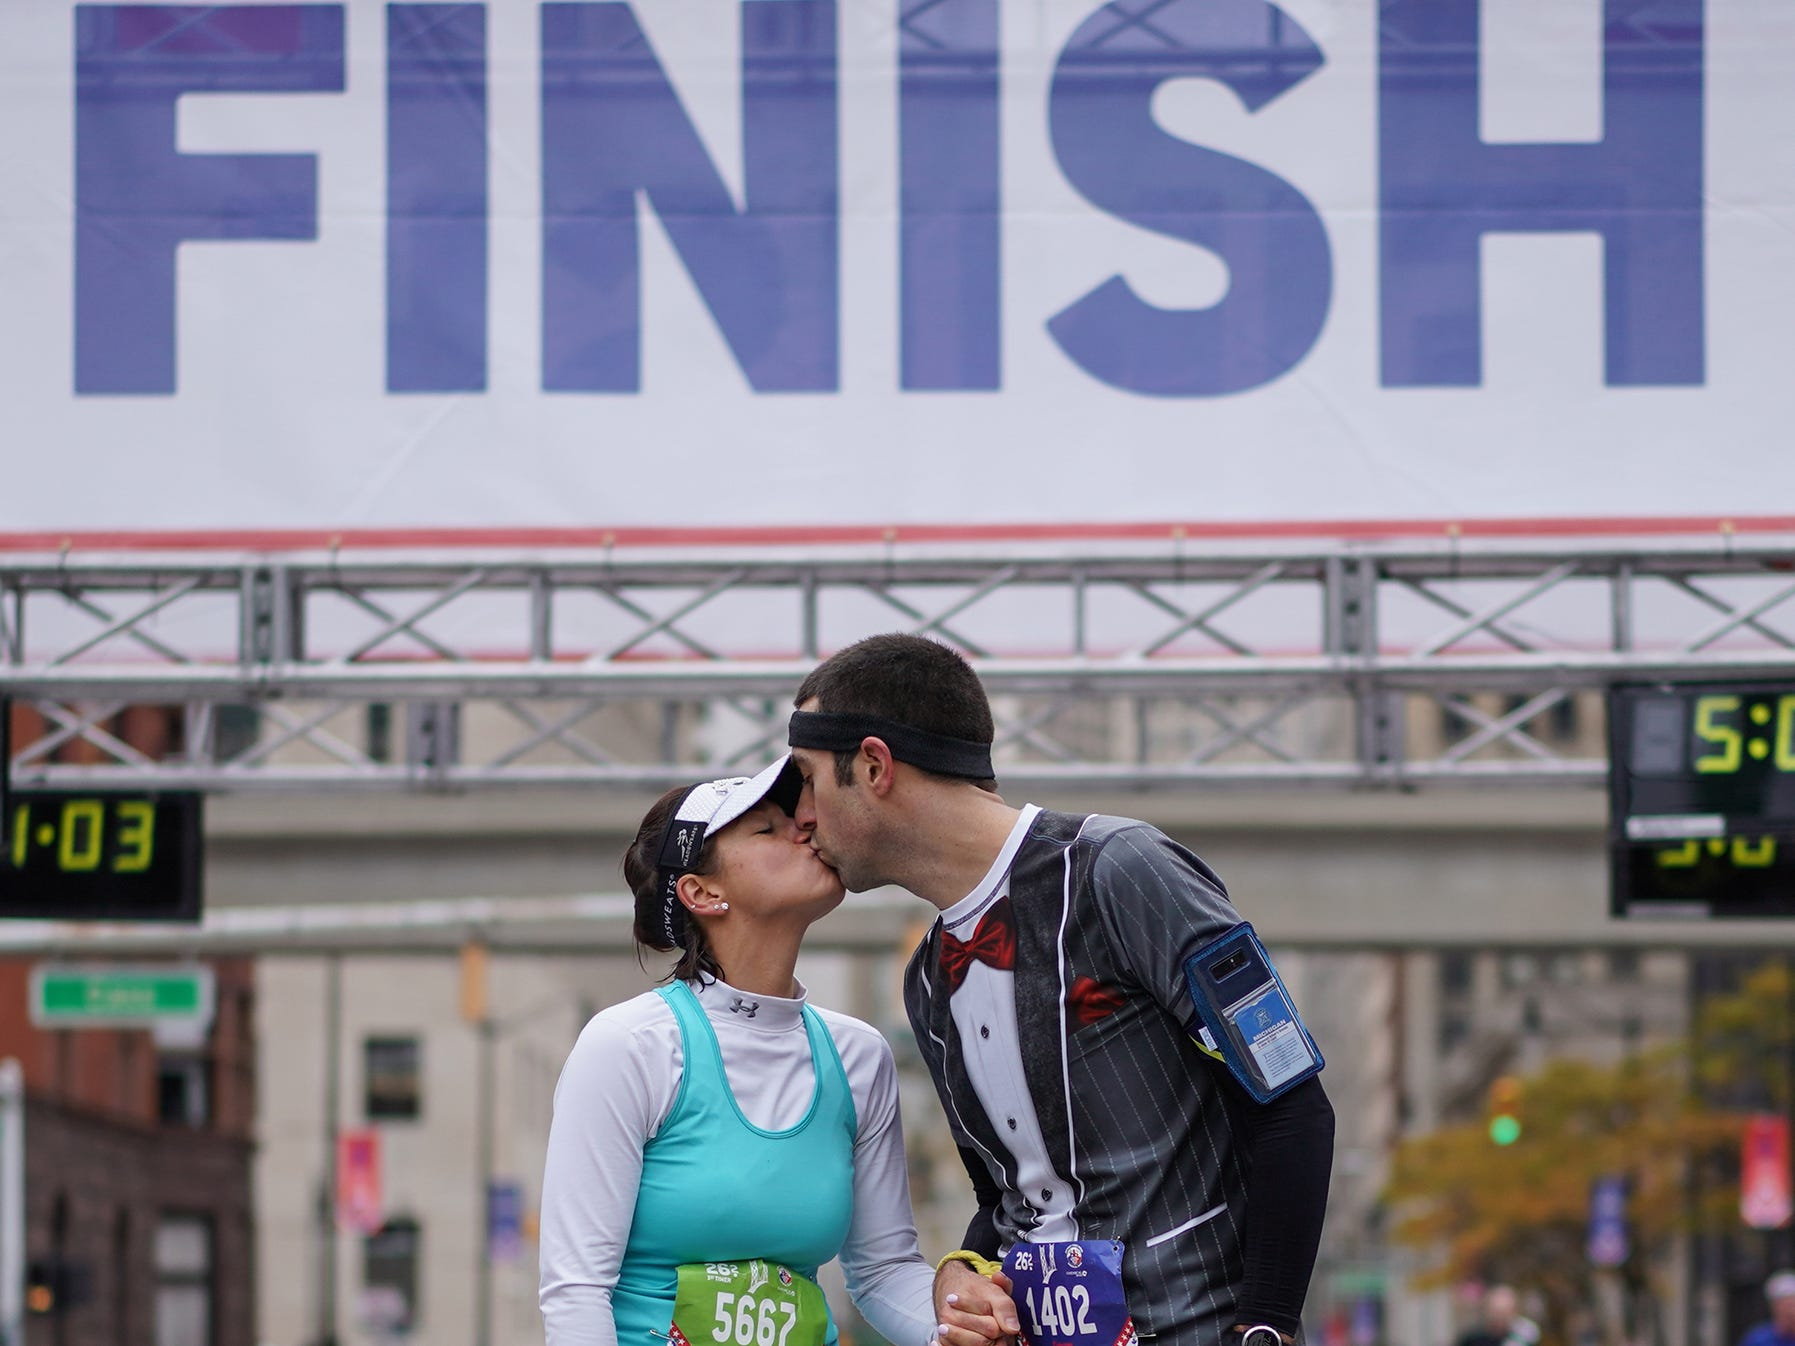 Newlyweds Whitney Black of Kentwood, MI and Steven Phillips of Kentwood share a kiss at the finish line for cameras after finishing the 41st Annual Detroit Free Press/Chemical Bank Marathon in Detroit on Sunday, Oct. 21, 2018. The couple got married during the race.